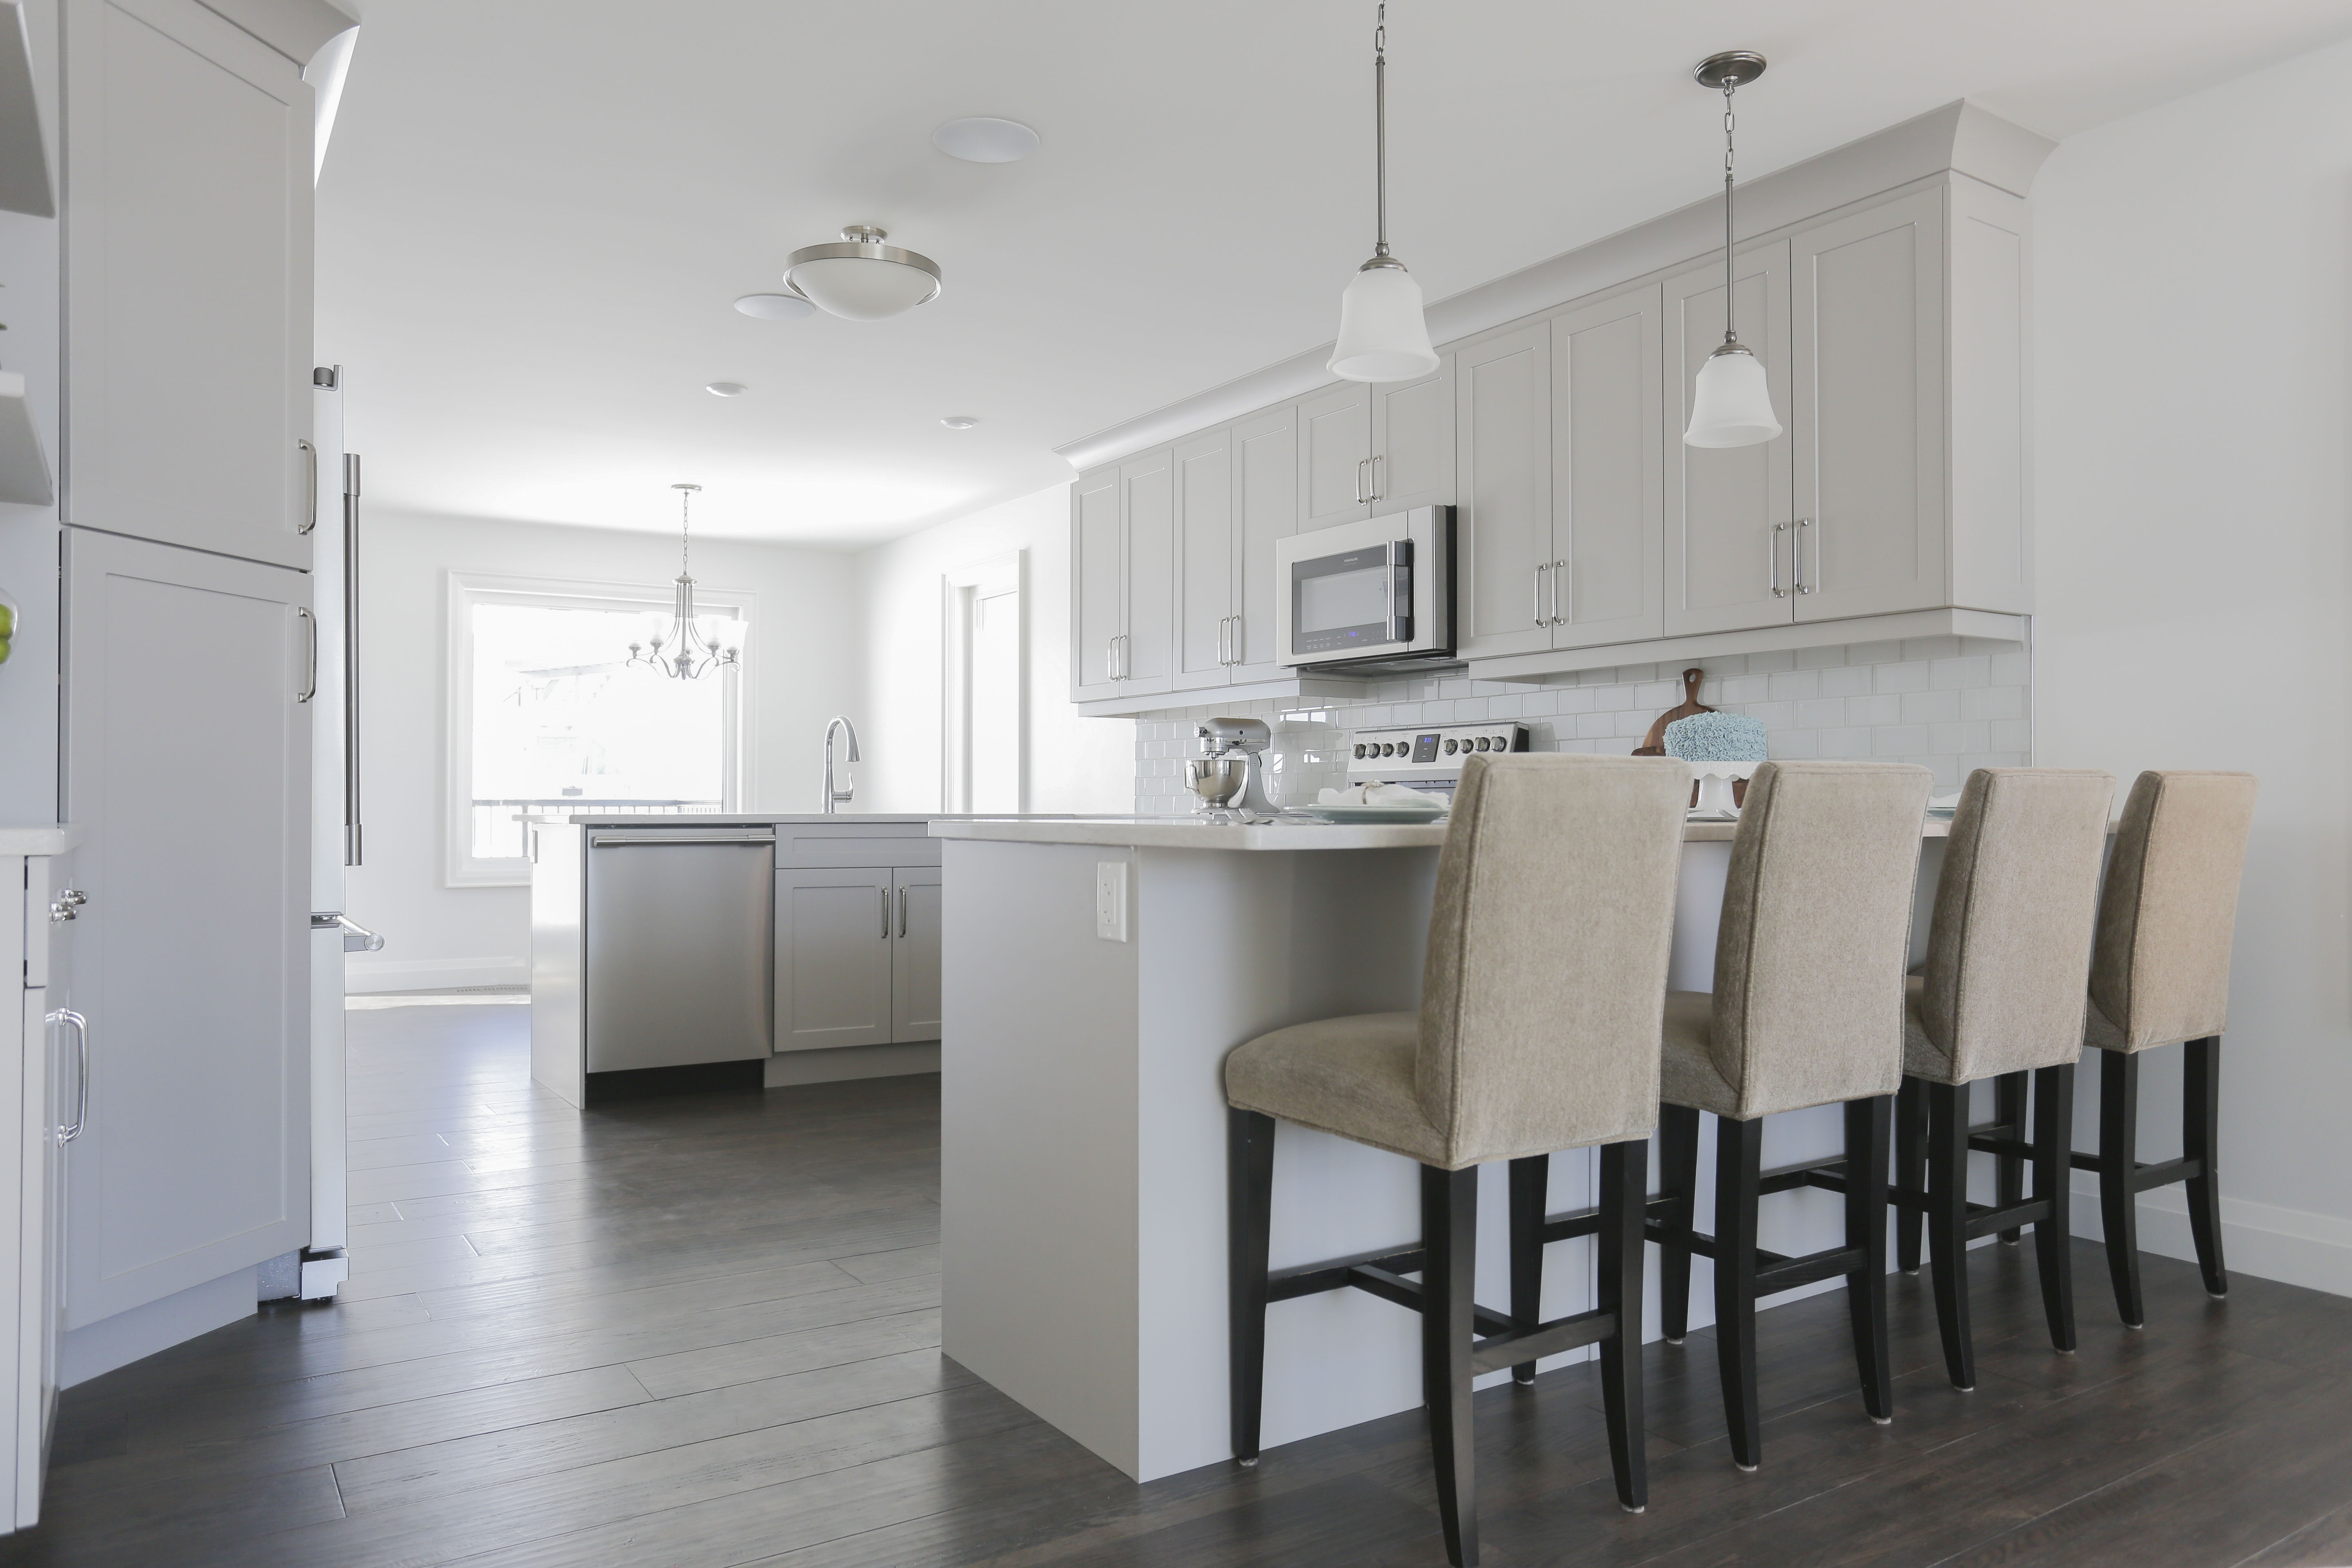 Kitchen Renovations Thunder Bay Contact Us Today Inspired Cabinetry